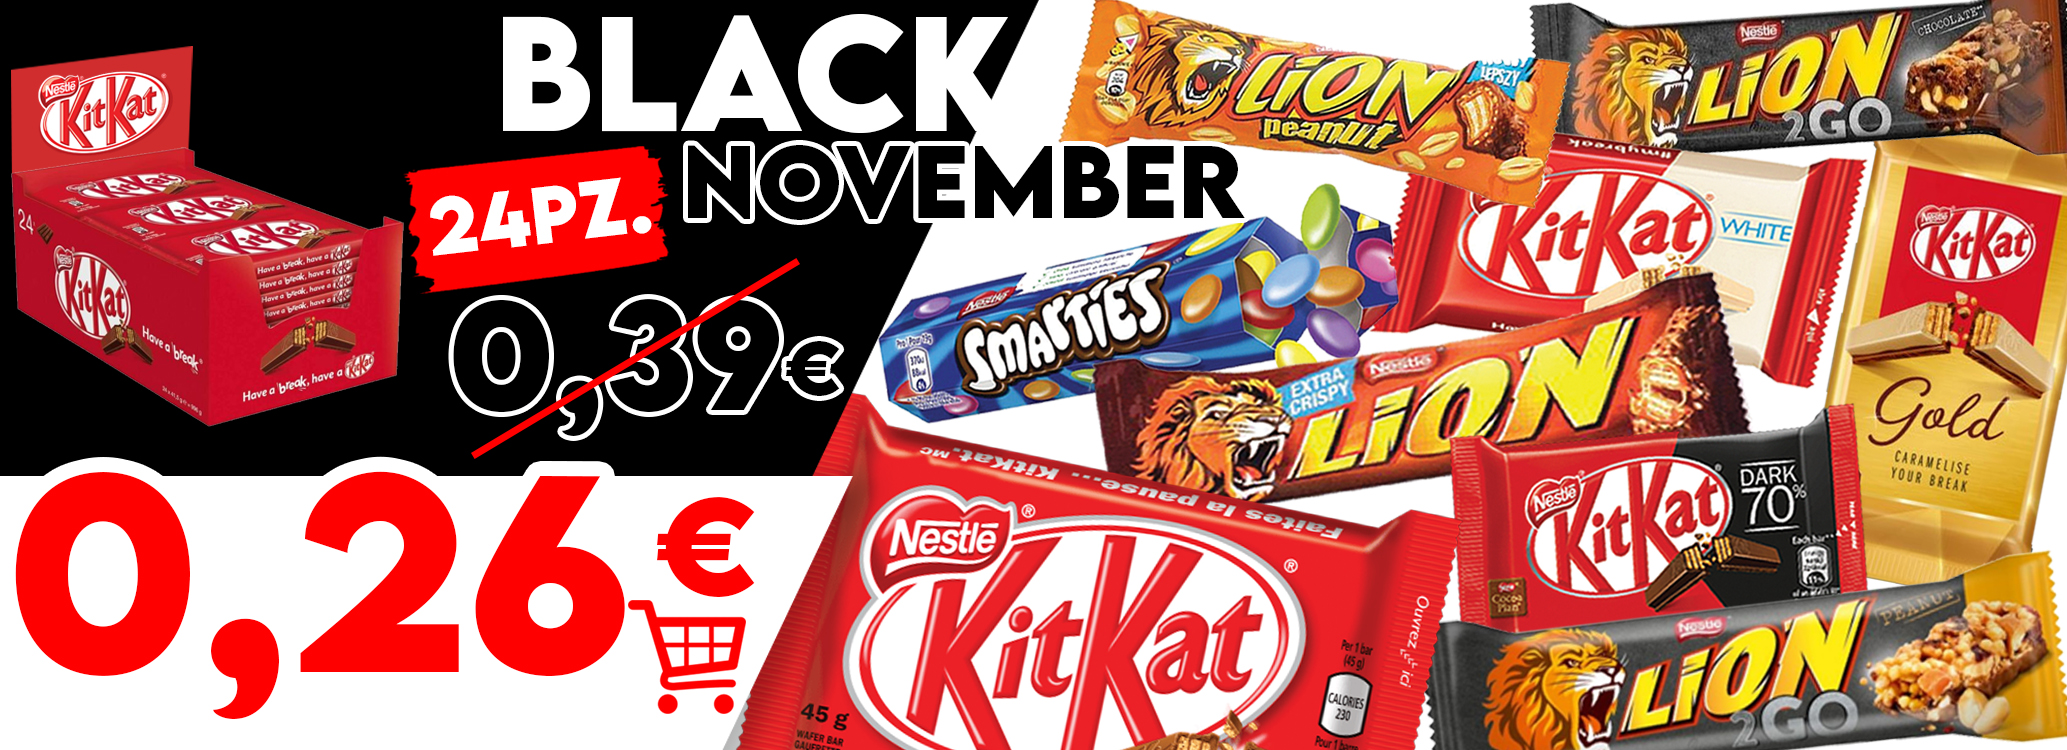 BLACK FRIDAY NESTLE'